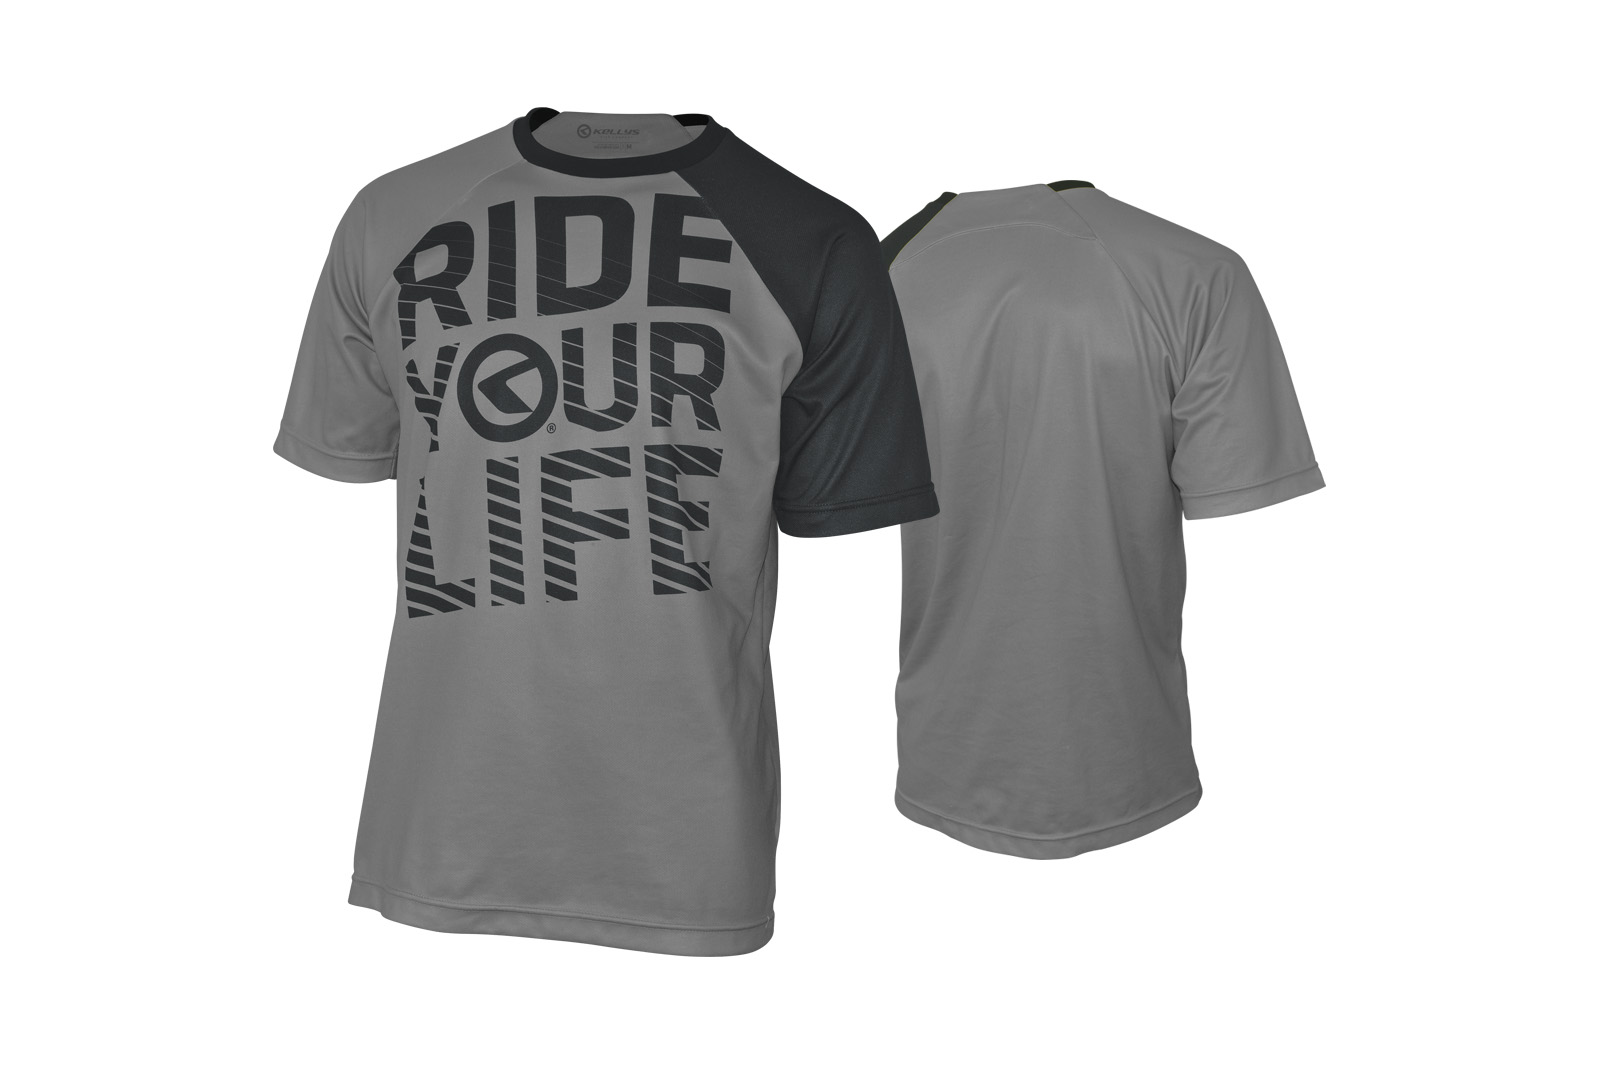 Kurzarmtrikot KELLYS RIDE YOUR LIFE grey - S - Kurzarmtrikot KELLYS RIDE YOUR LIFE grey - S